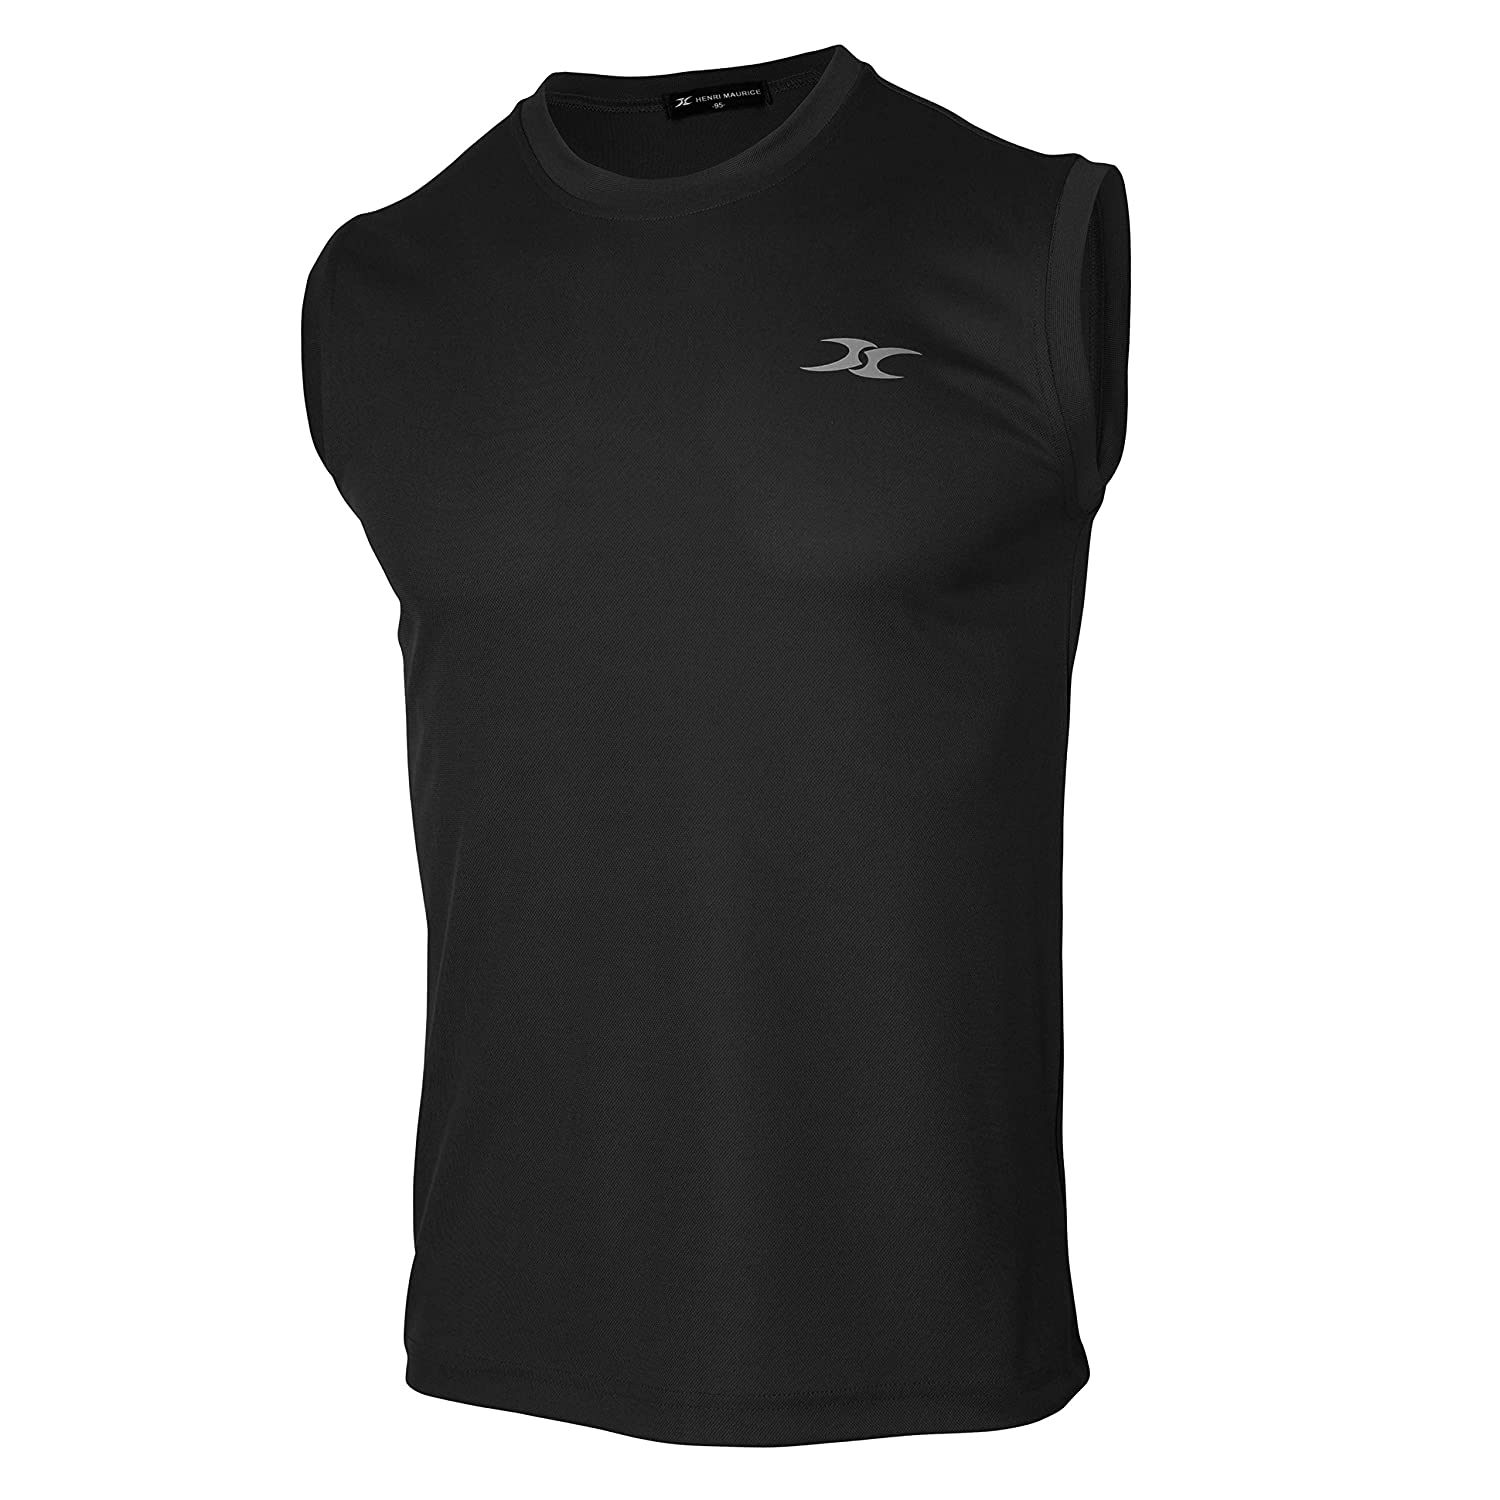 04865d330346a cm Men's Dry Fit Workout Running Athletic Sleeveless Shirts